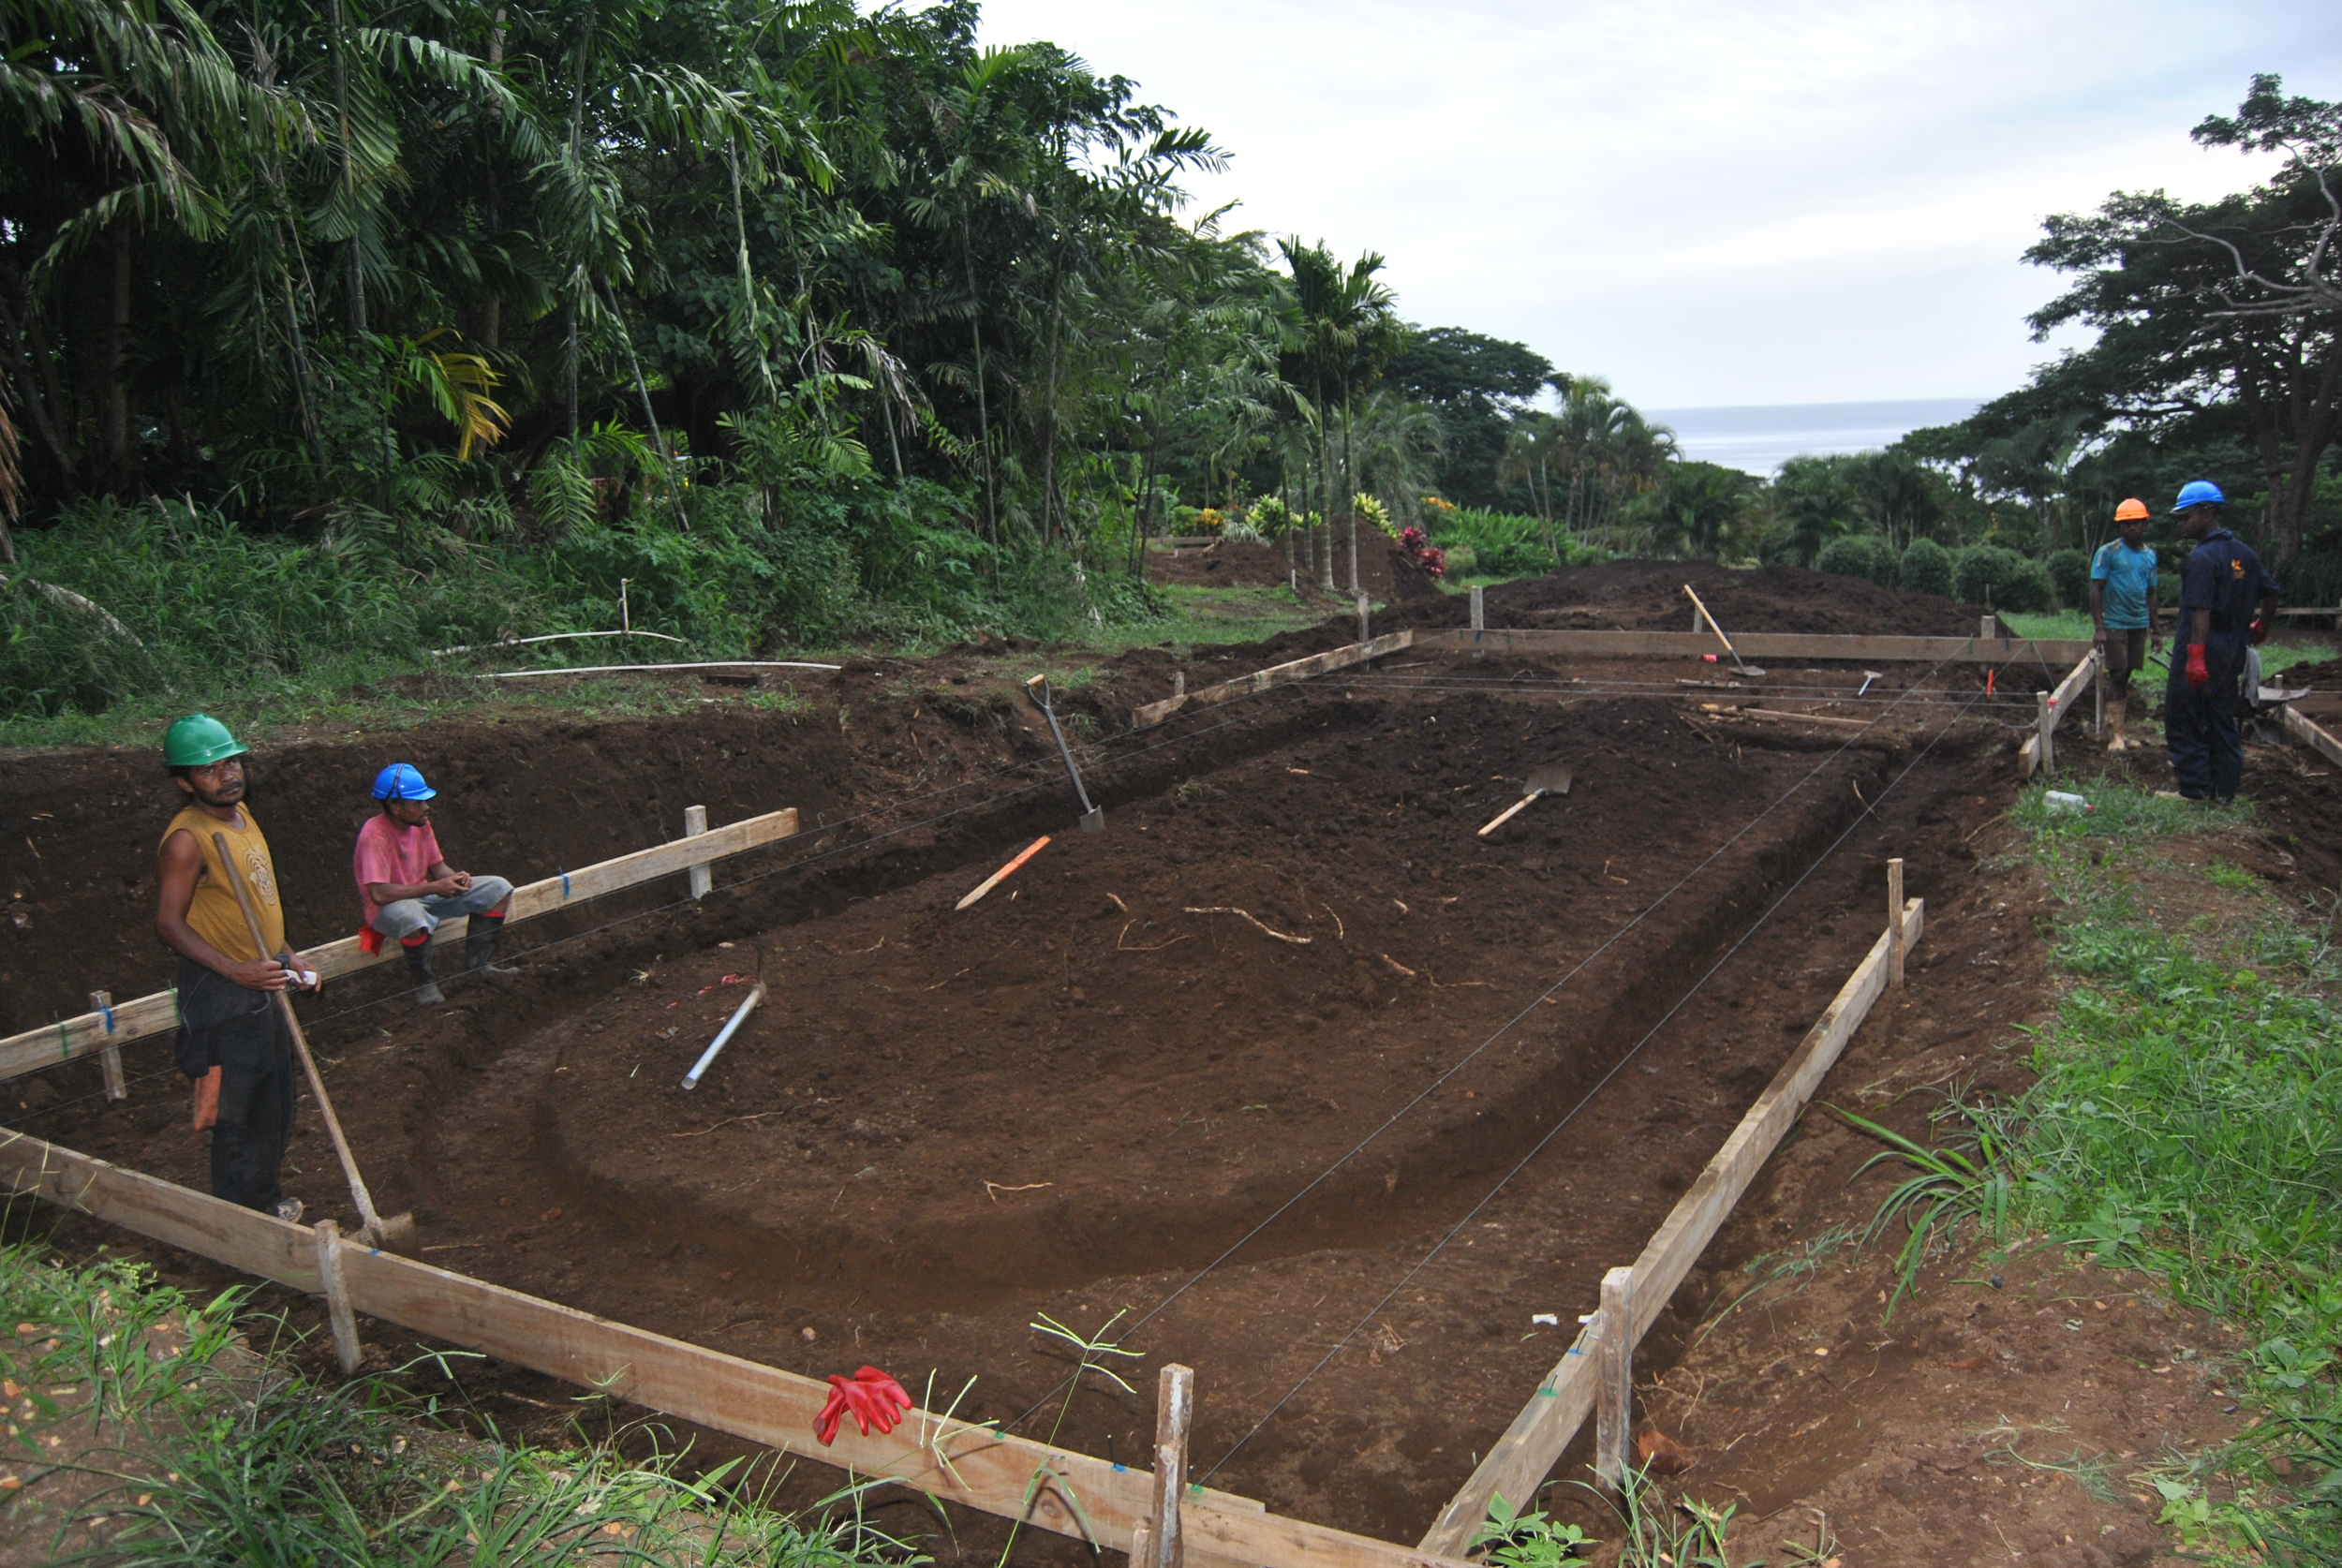 Footers on bure number 3 are excavated.